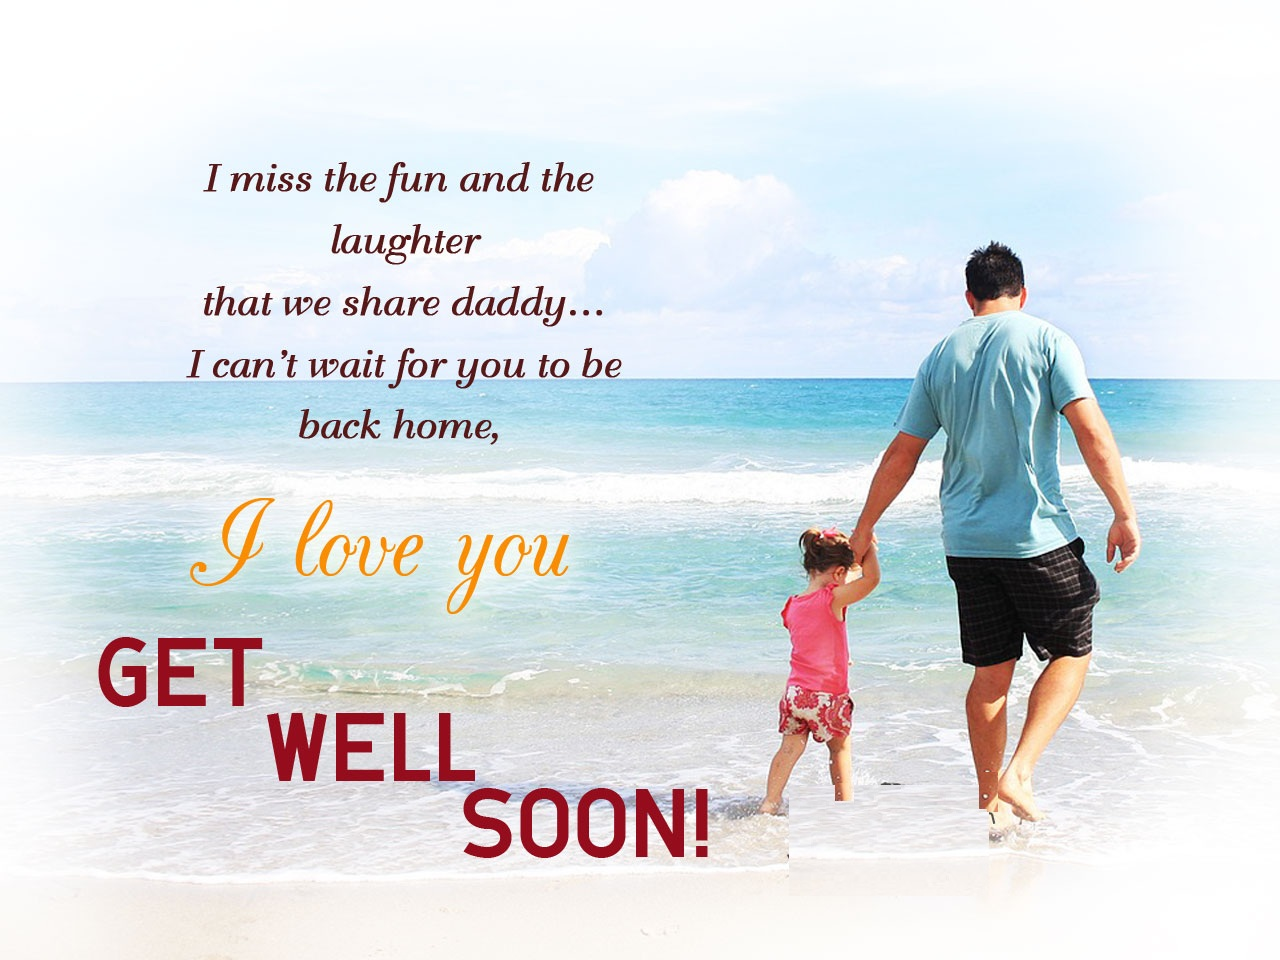 Get Well Soon Daddy Quotes Amp Images My Site